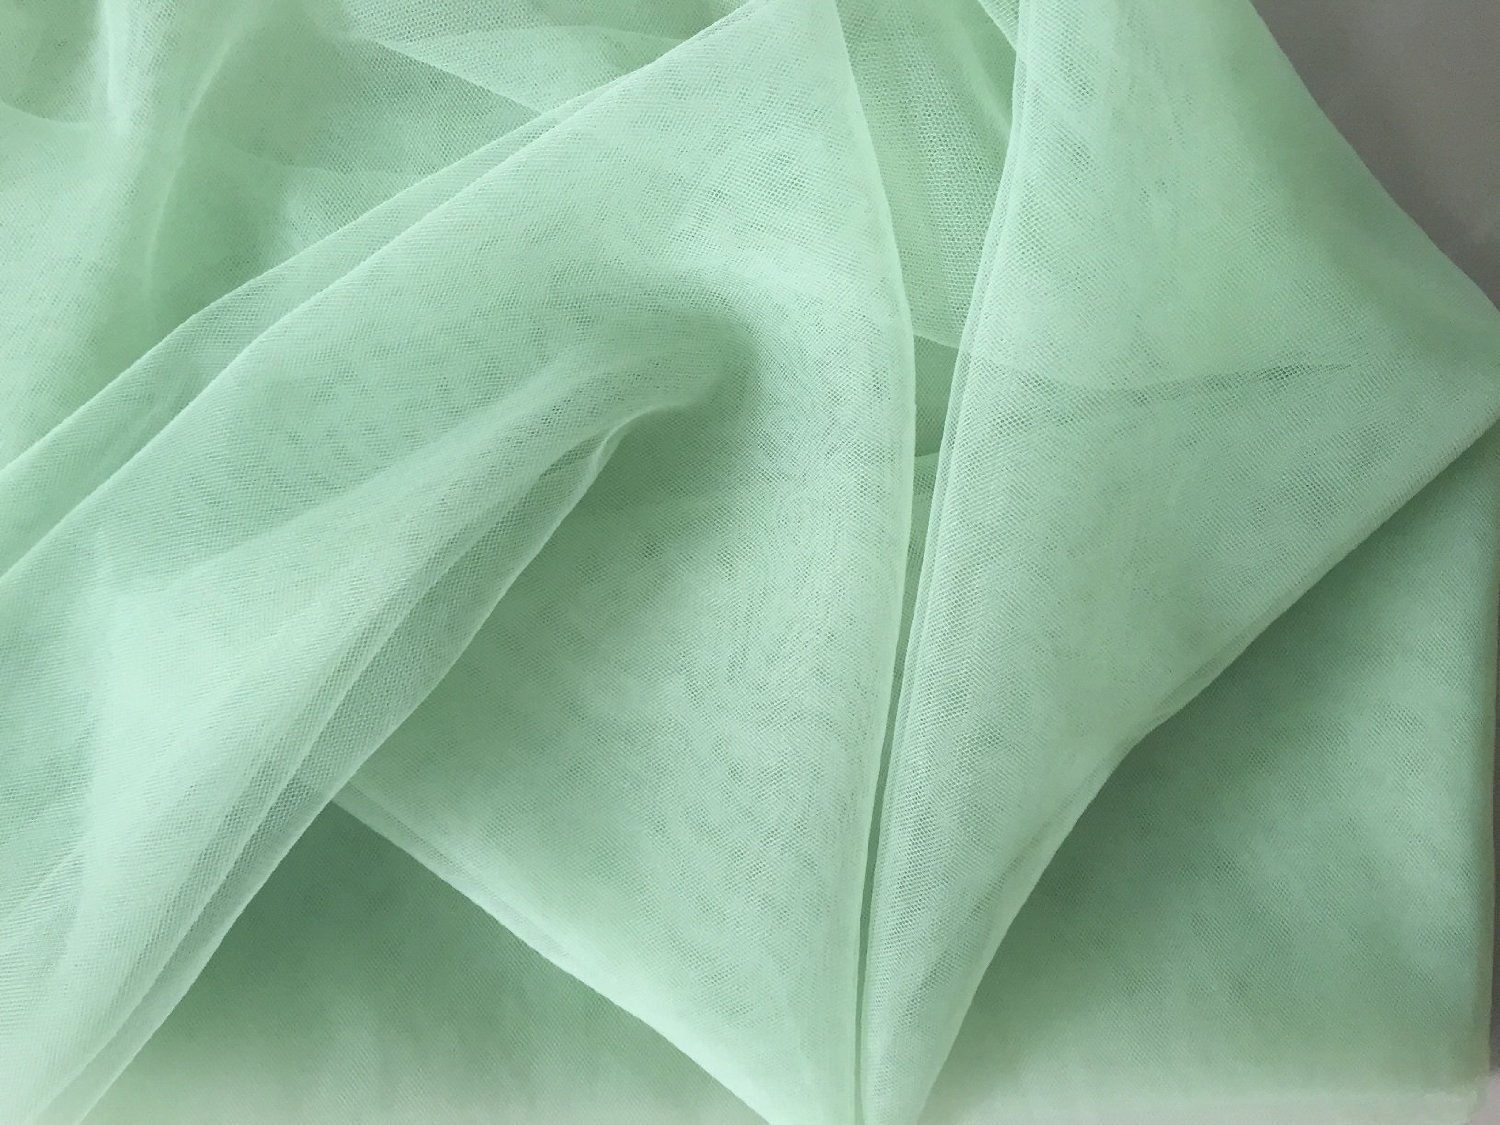 """Shatex 60""""-W x 5 yard-L DIY Fabric Mosquito Net for Wedding & Bedding, Insect Barrier Net, Olive Green"""